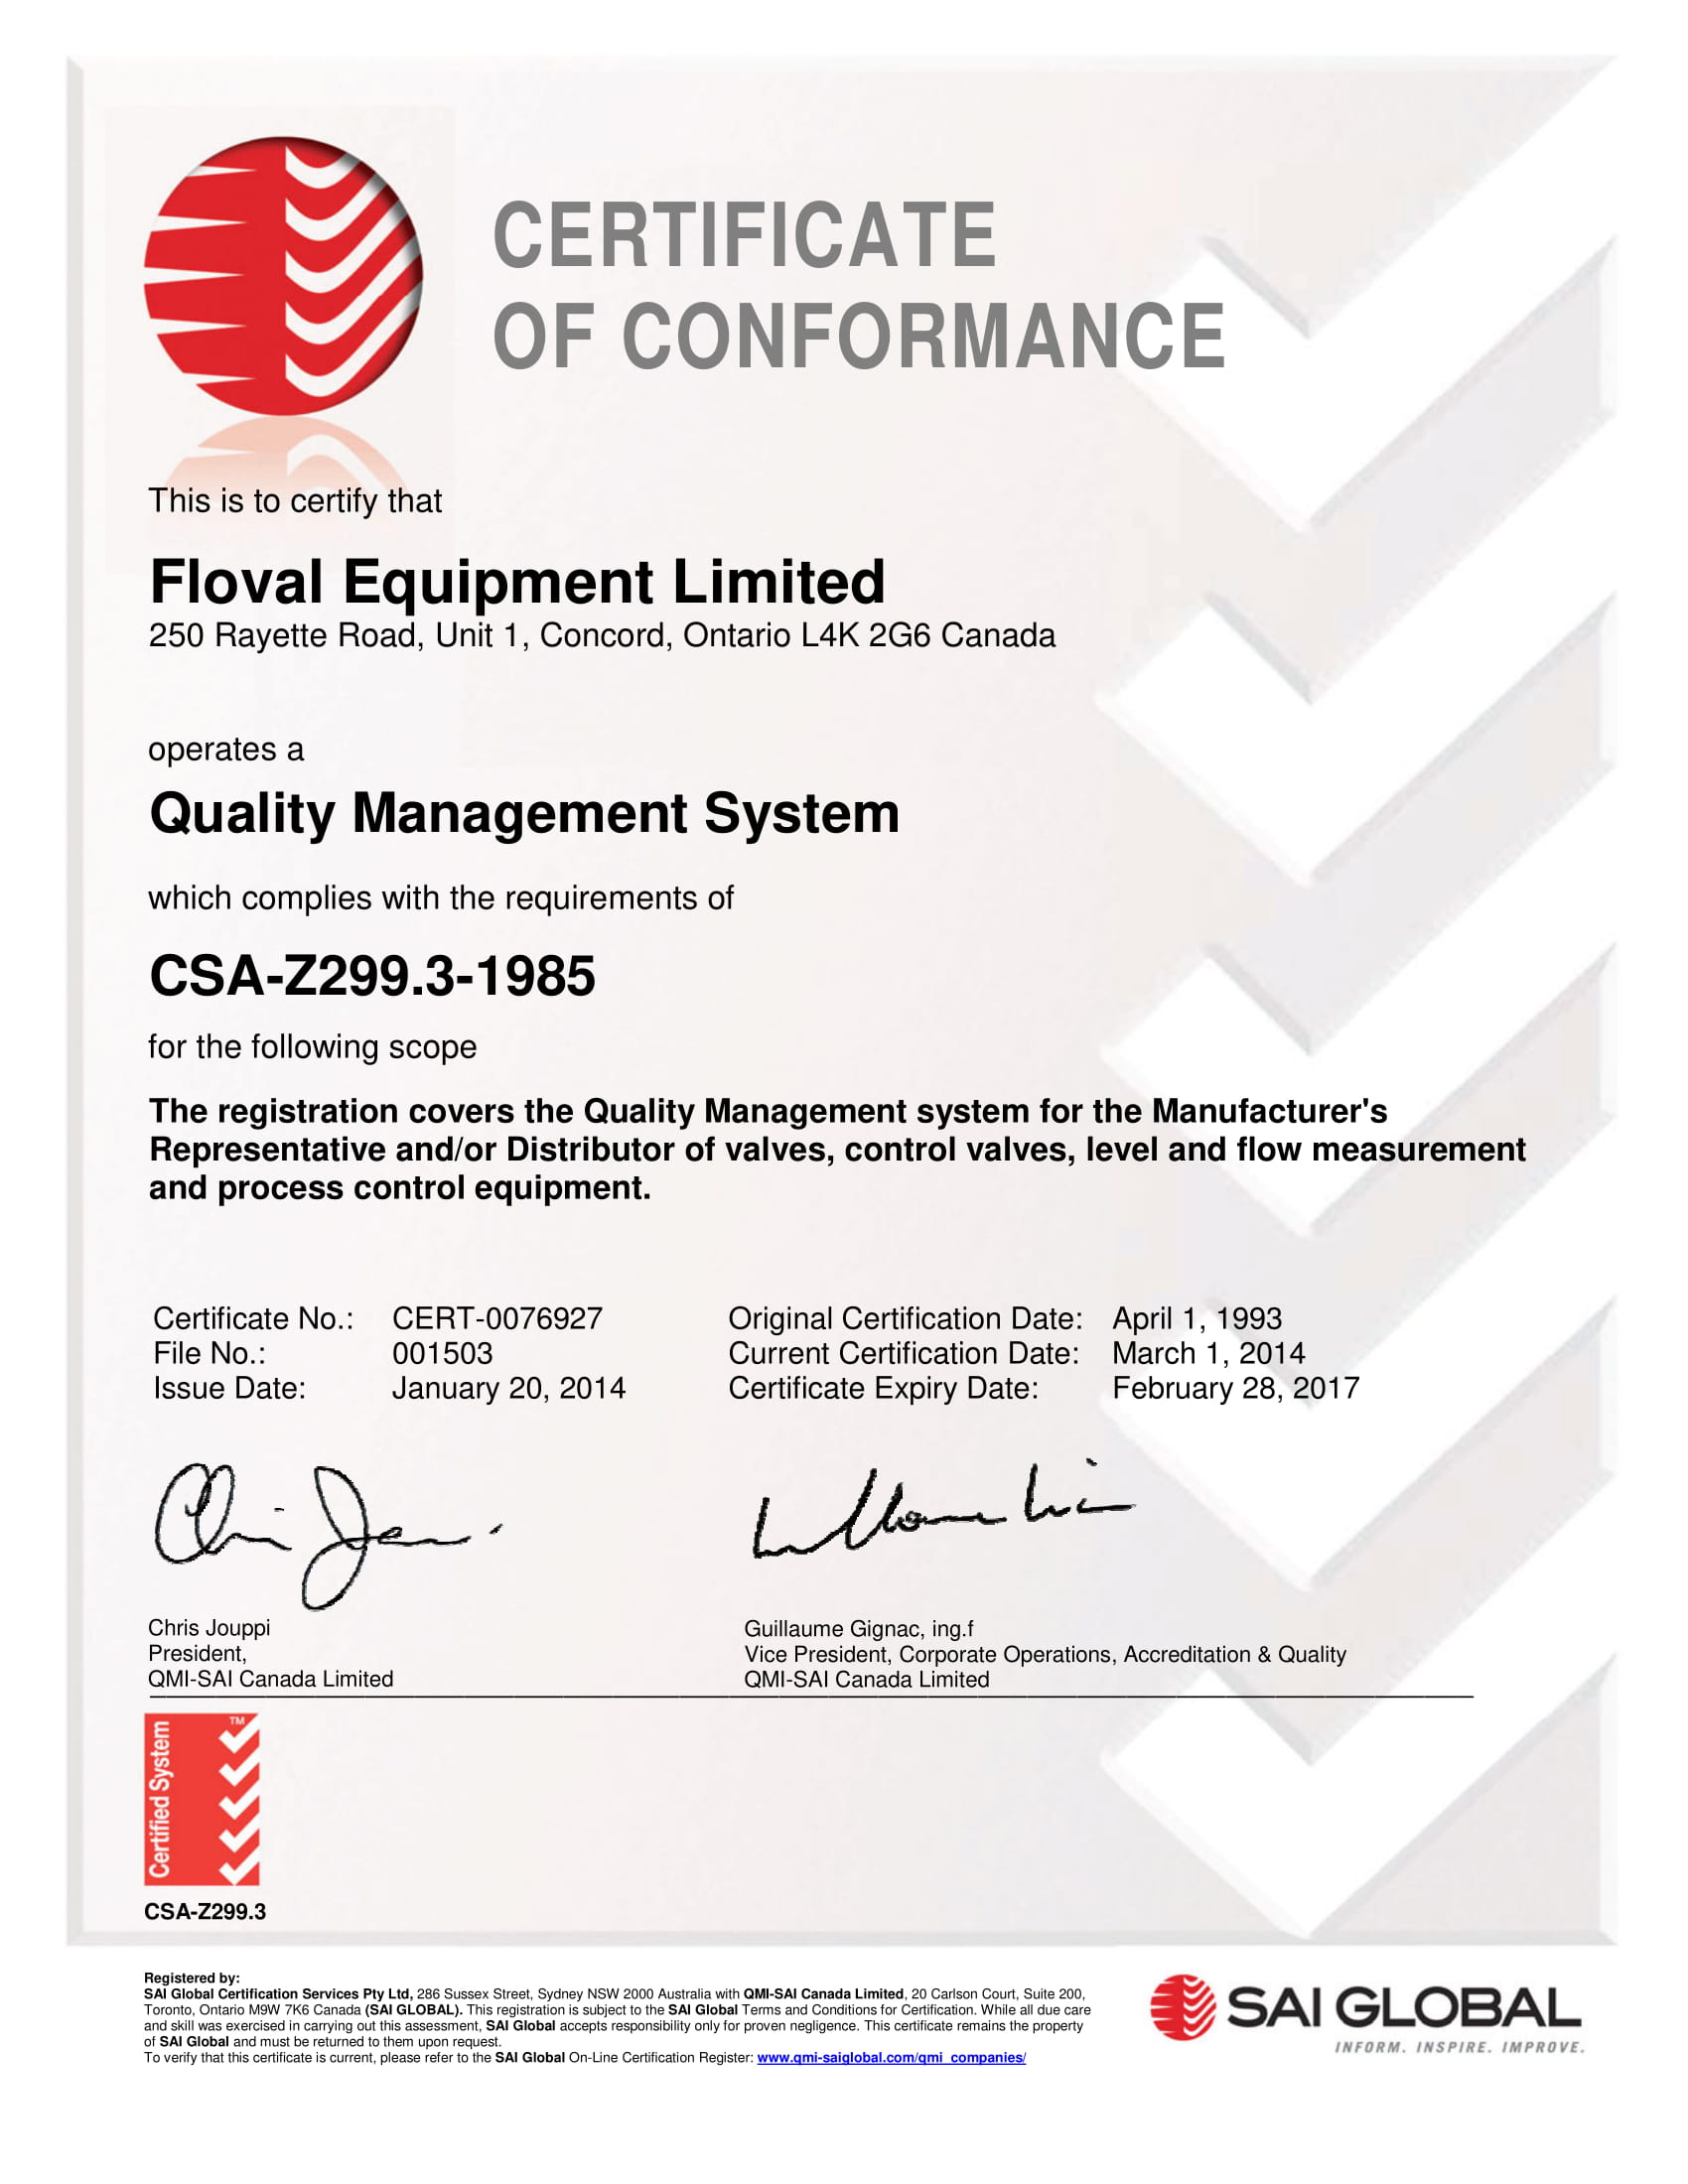 company certificate of conformance example